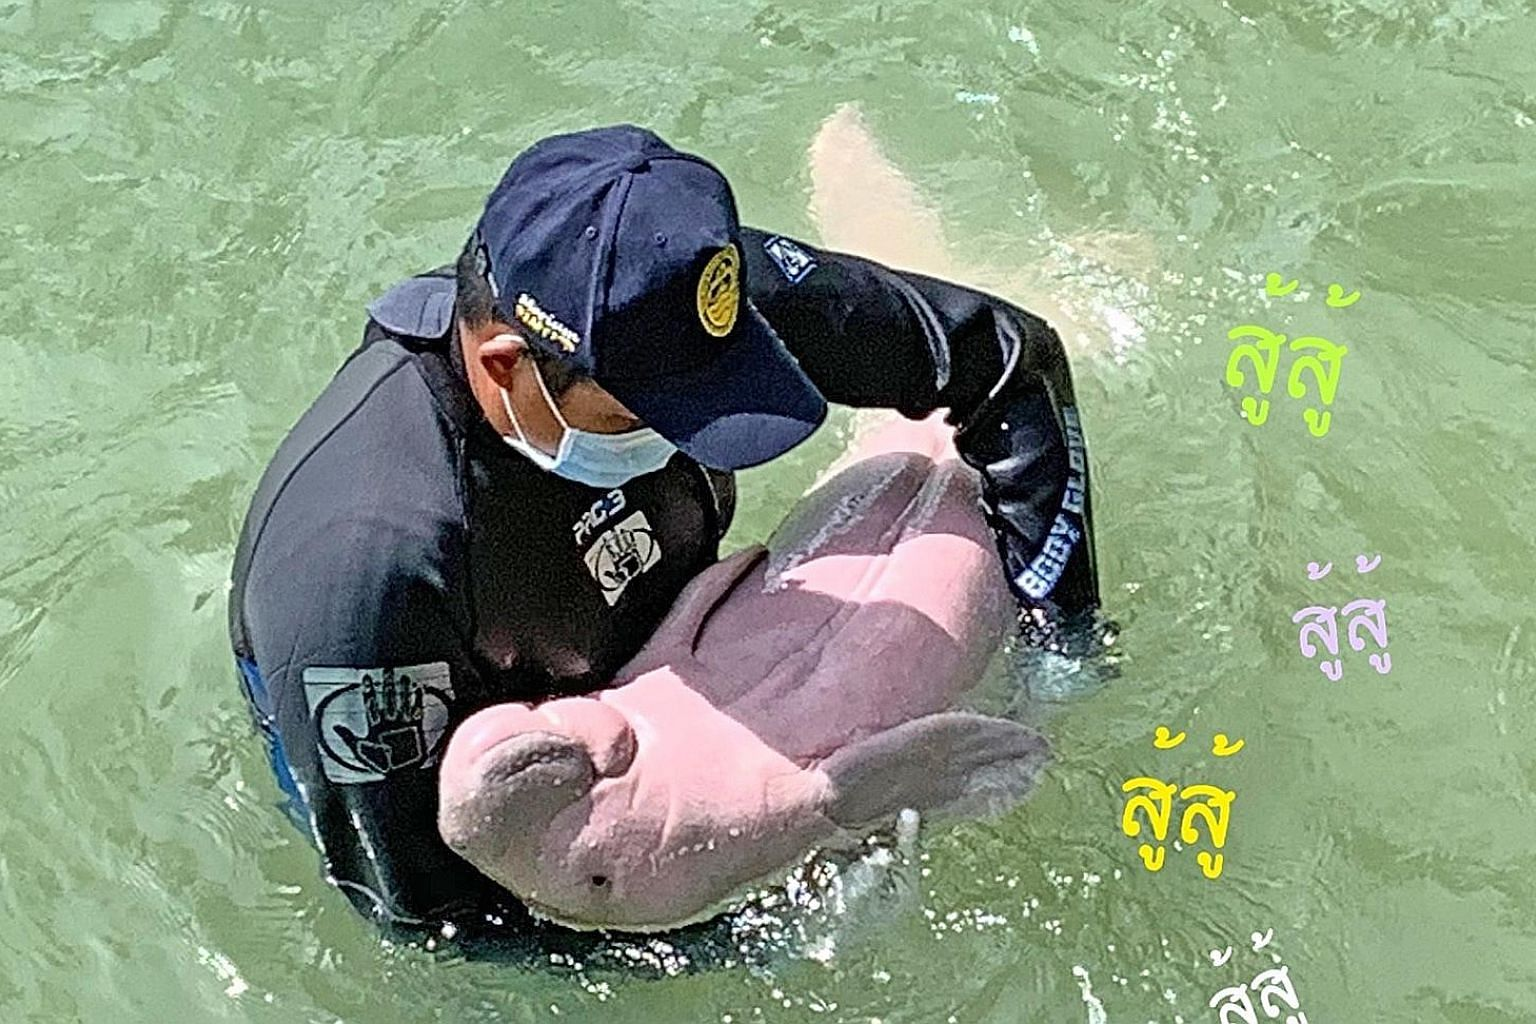 Above: Rescued dugong Mariam exposing her pink belly and relaxing in the arms of a carer. Left: Pieces of plastic that were found in the intestinal tract of Mariam. The dugong died on Aug 17 at the Trang province marine park. PHOTOS: DEPARTMENT OF MA